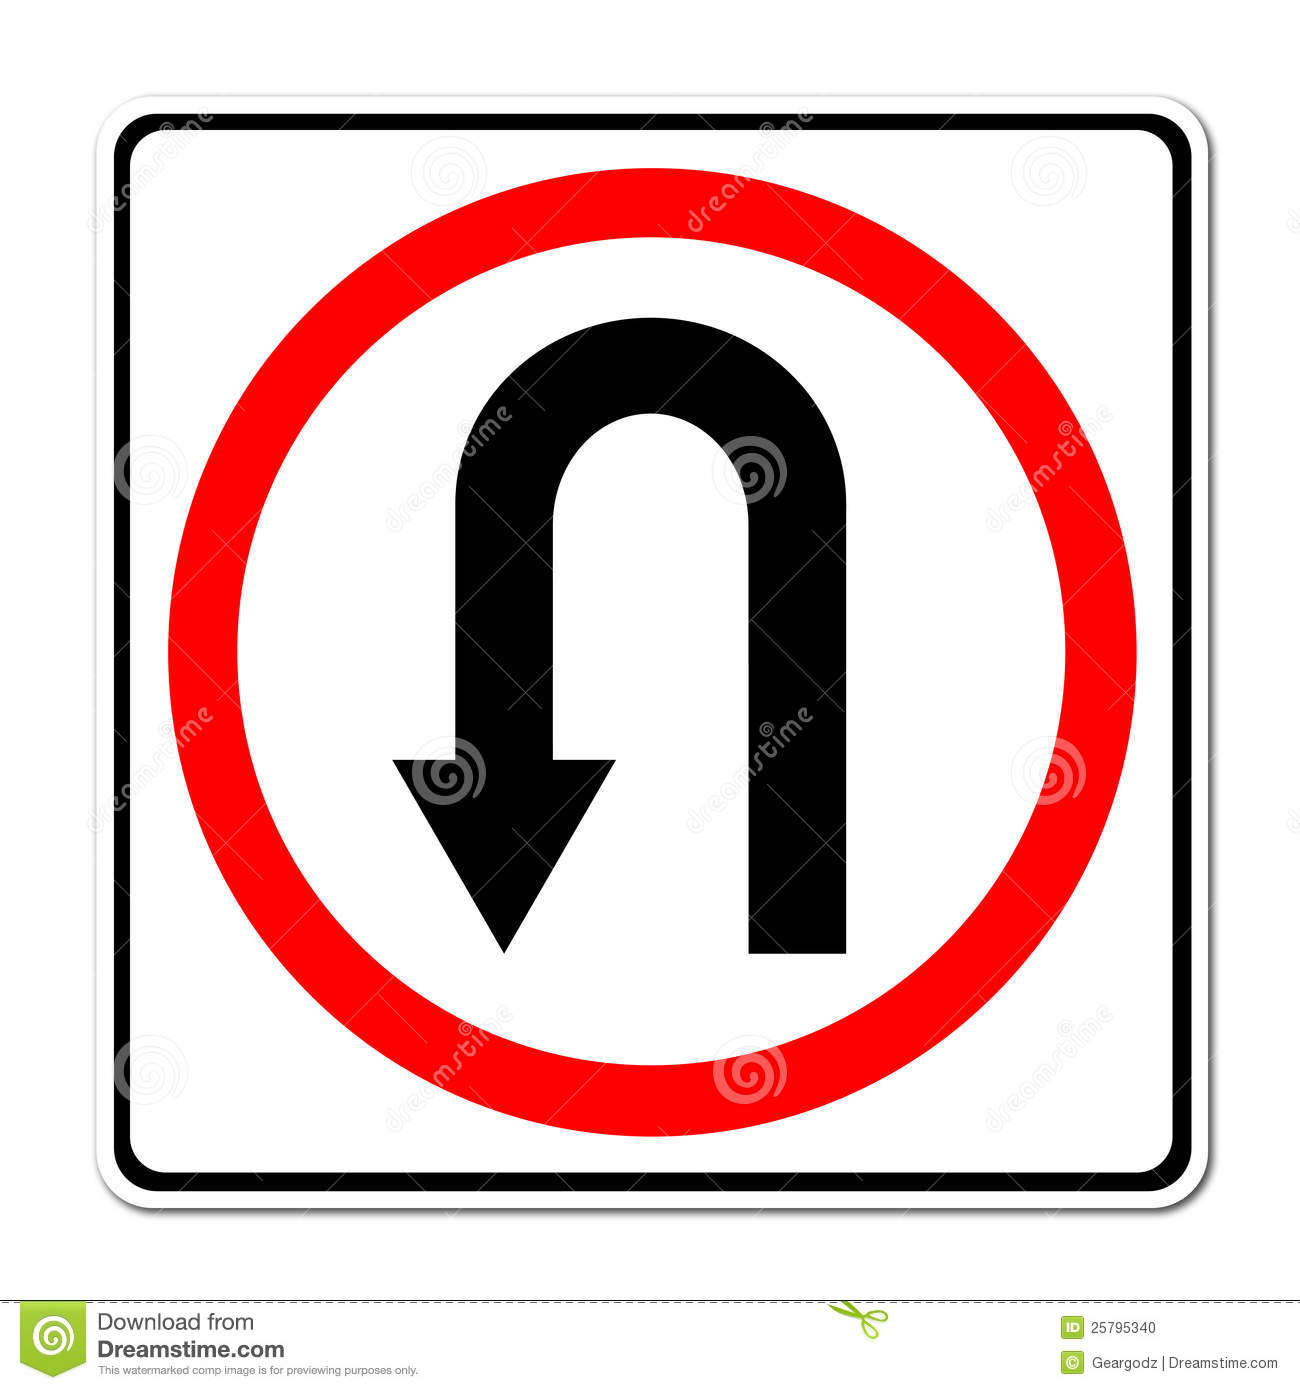 Turn Back Road Sign Stock Vector.